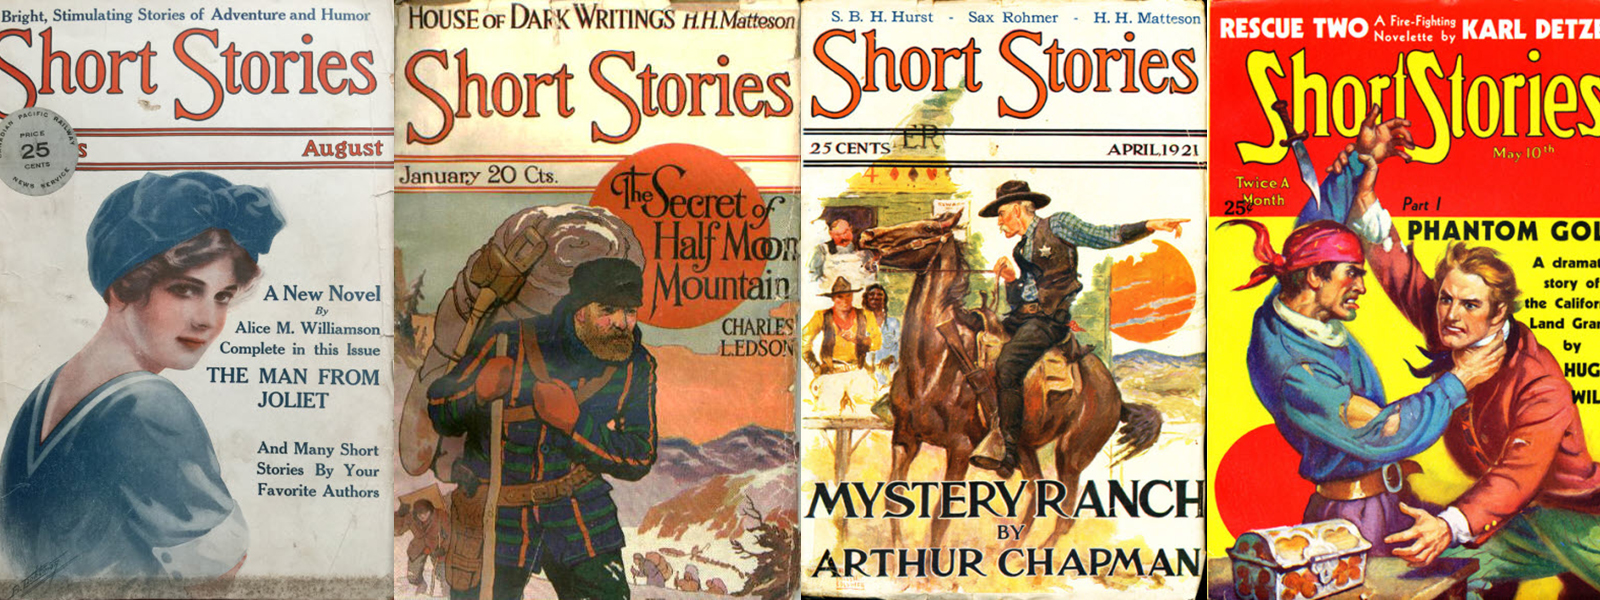 Short Stories Magazine Issues